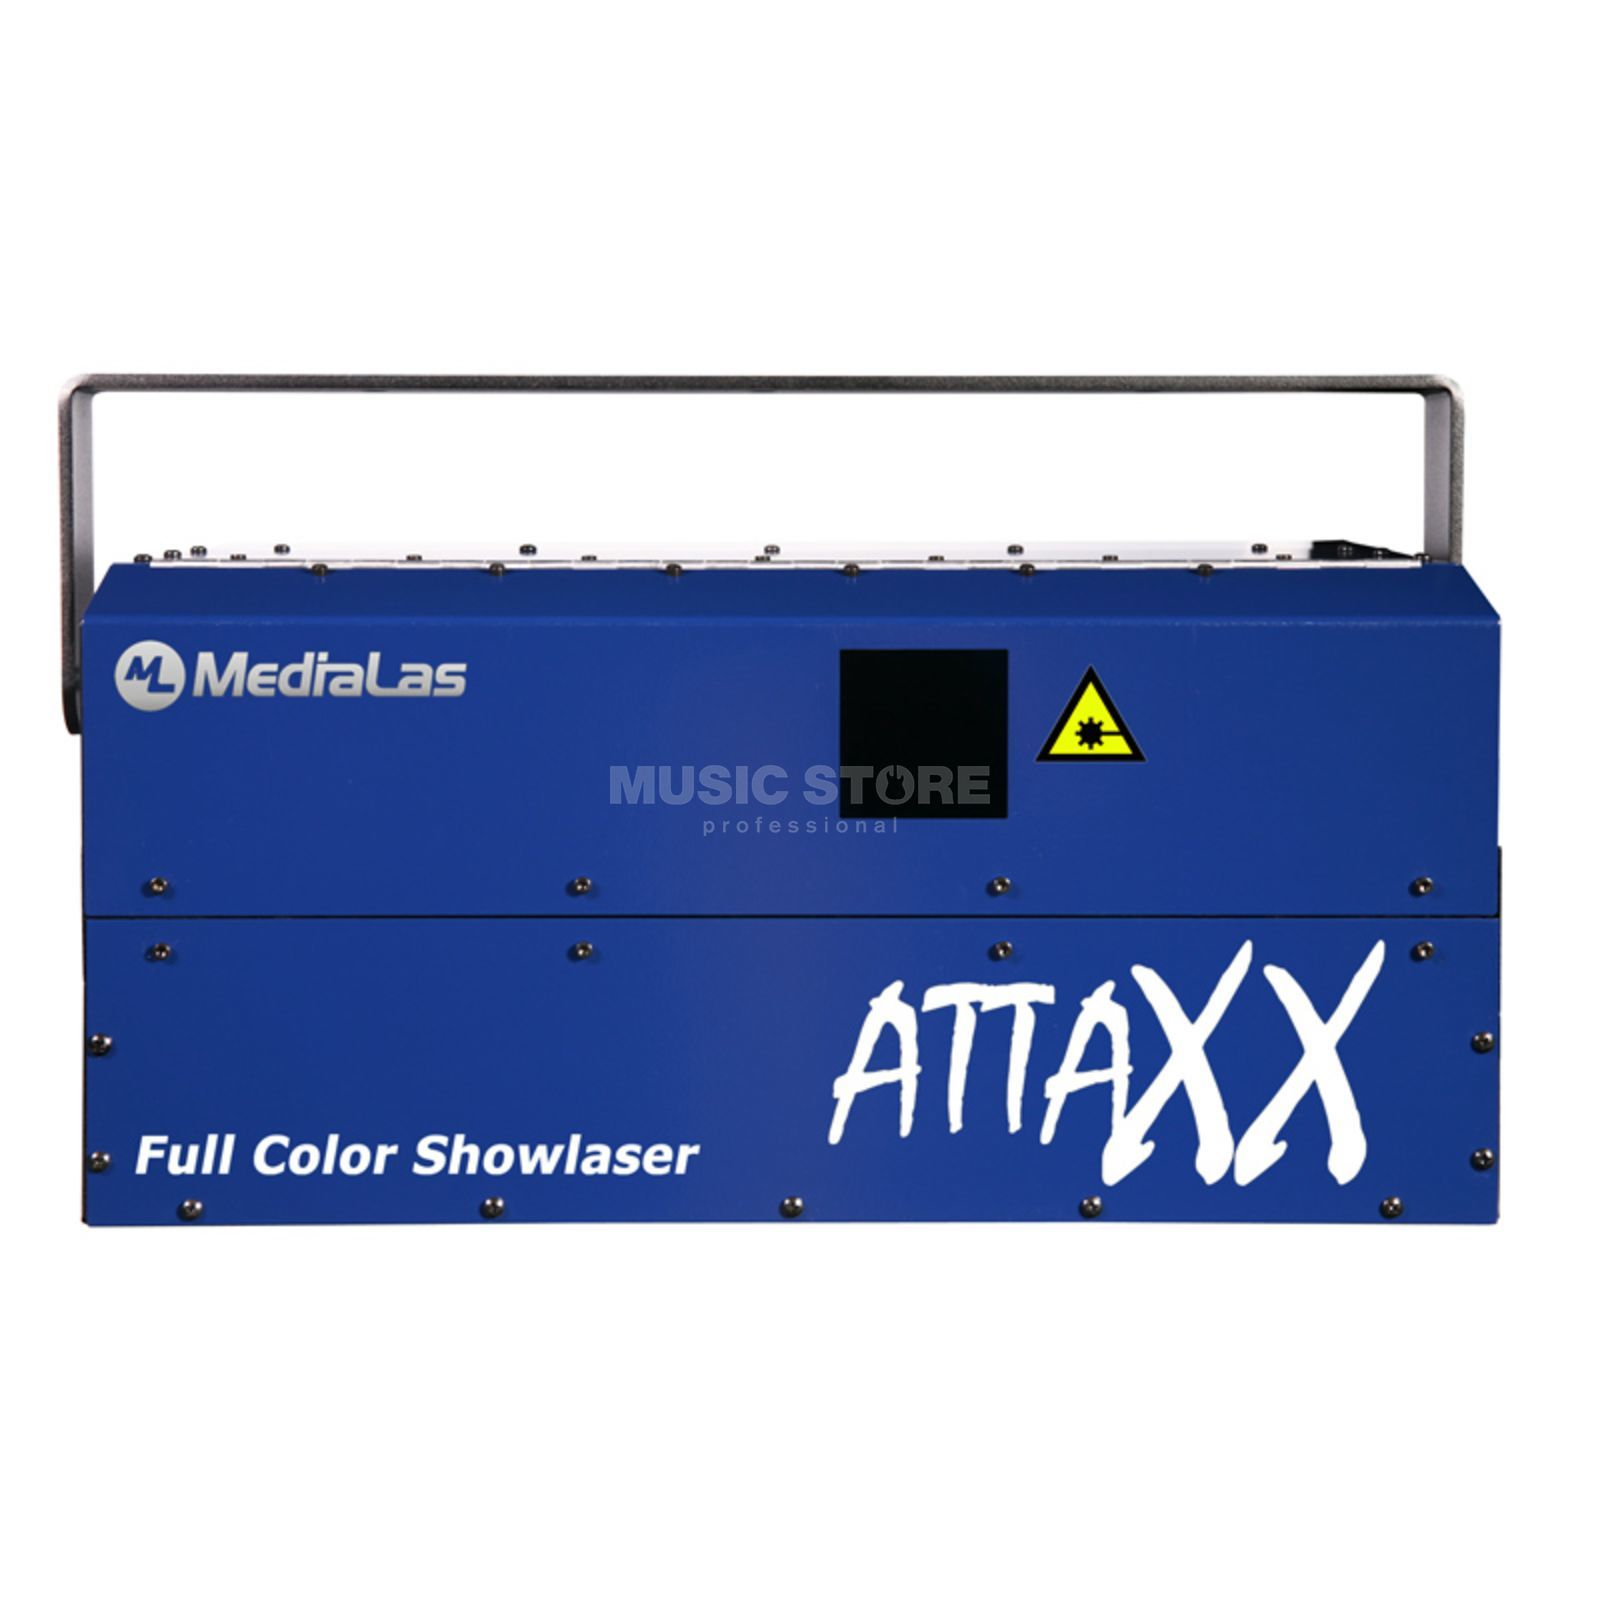 MediaLas AttaXX Pro 3.5 RGB Demo Product Image